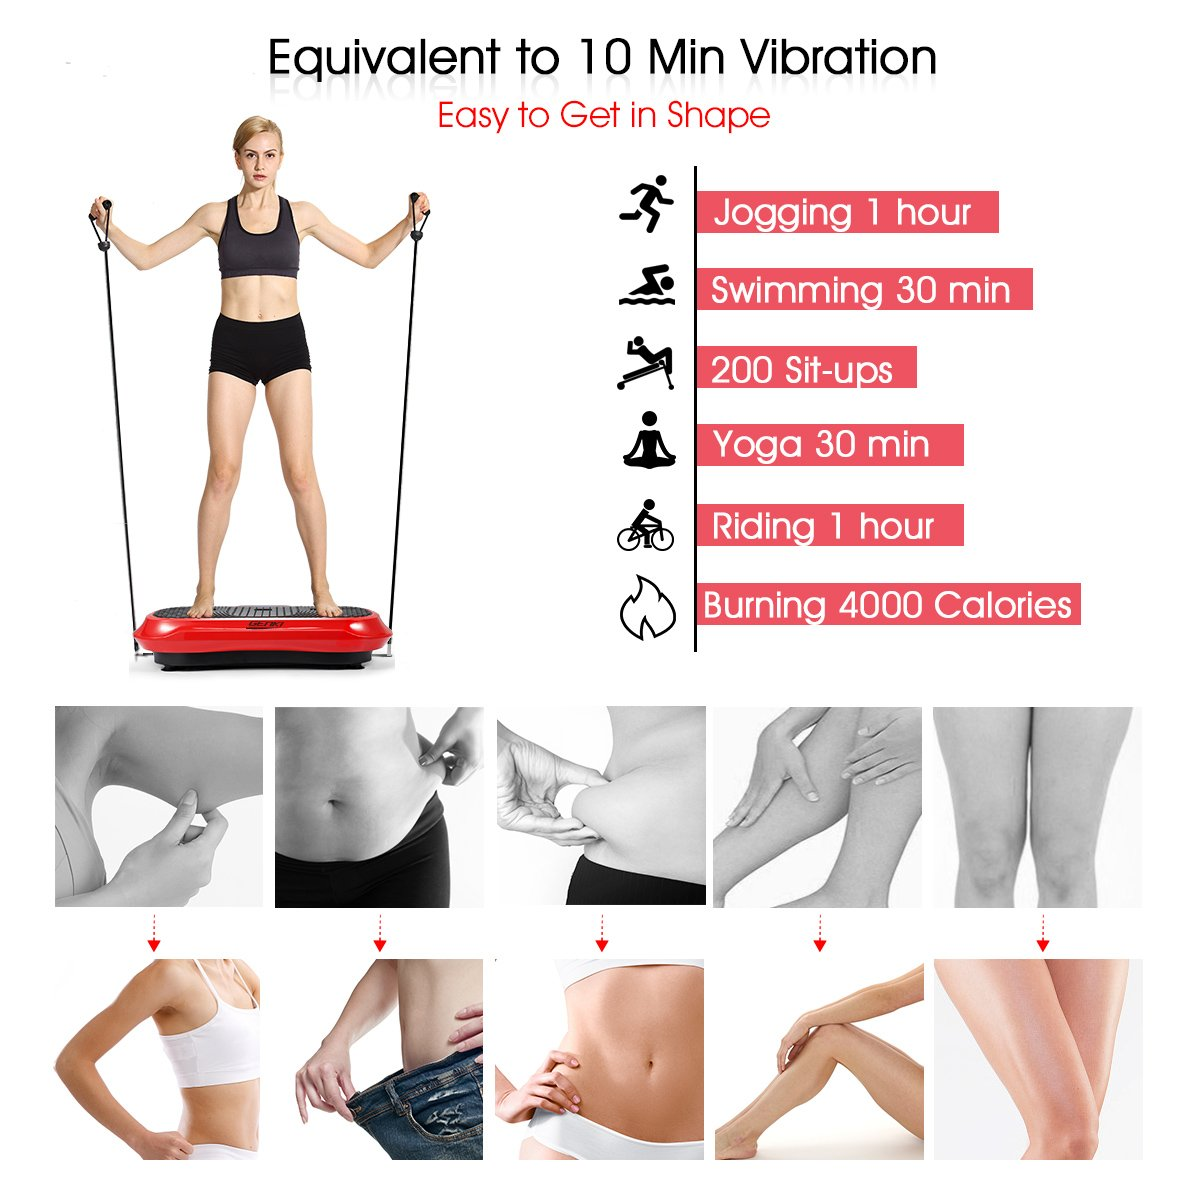 GENKI YD-1010B-R Ultra Slim Vibration Machine Plate Platform Whole Body Shaper Trainer Exercise Red by GENKI (Image #2)